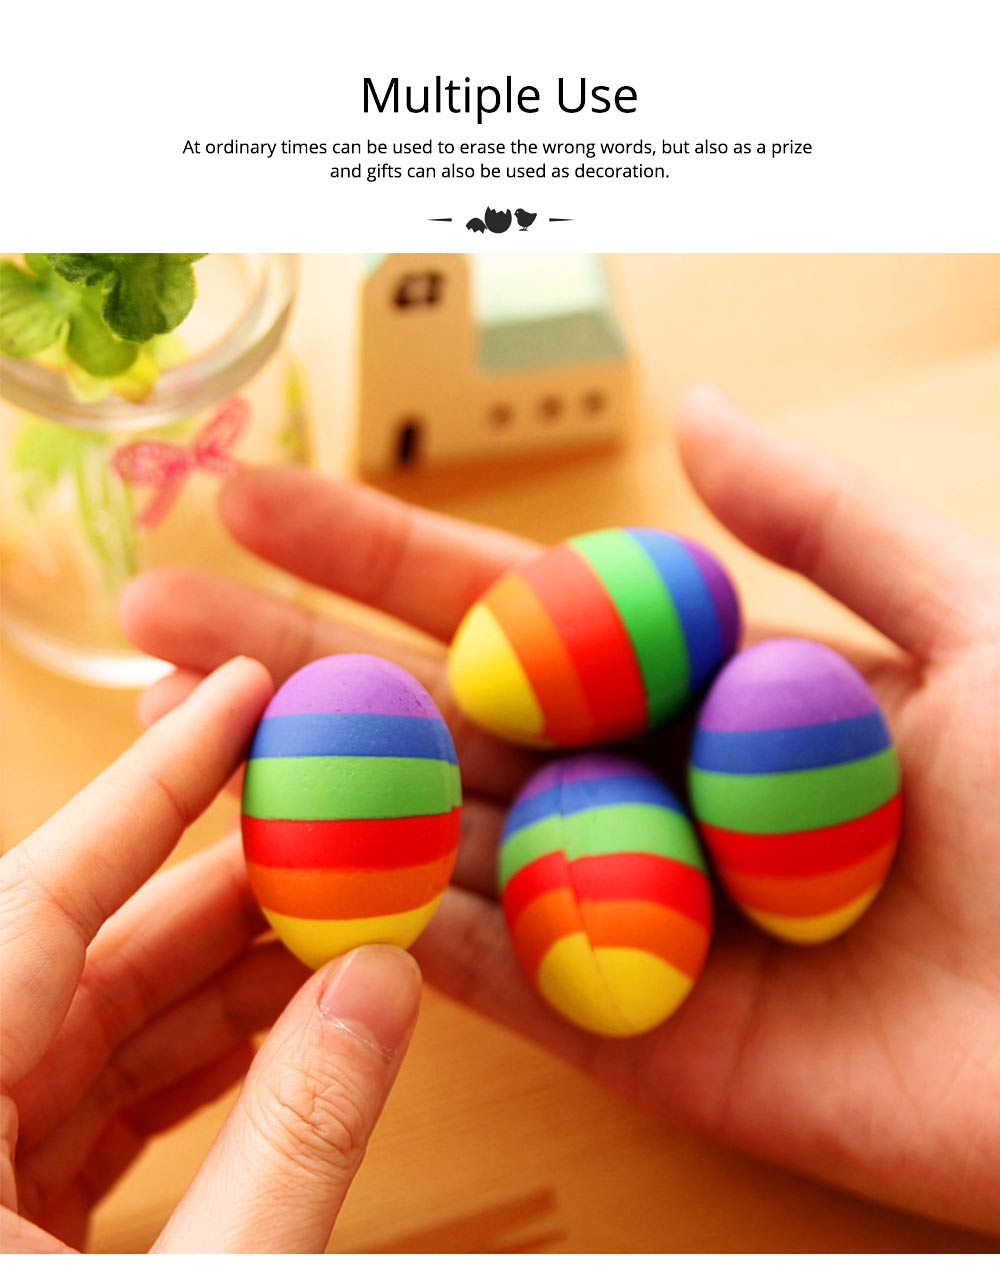 Fun Easter Gifts For Toddlers - Flexible Colored Eraser with Eggs Design, 2PCS 11